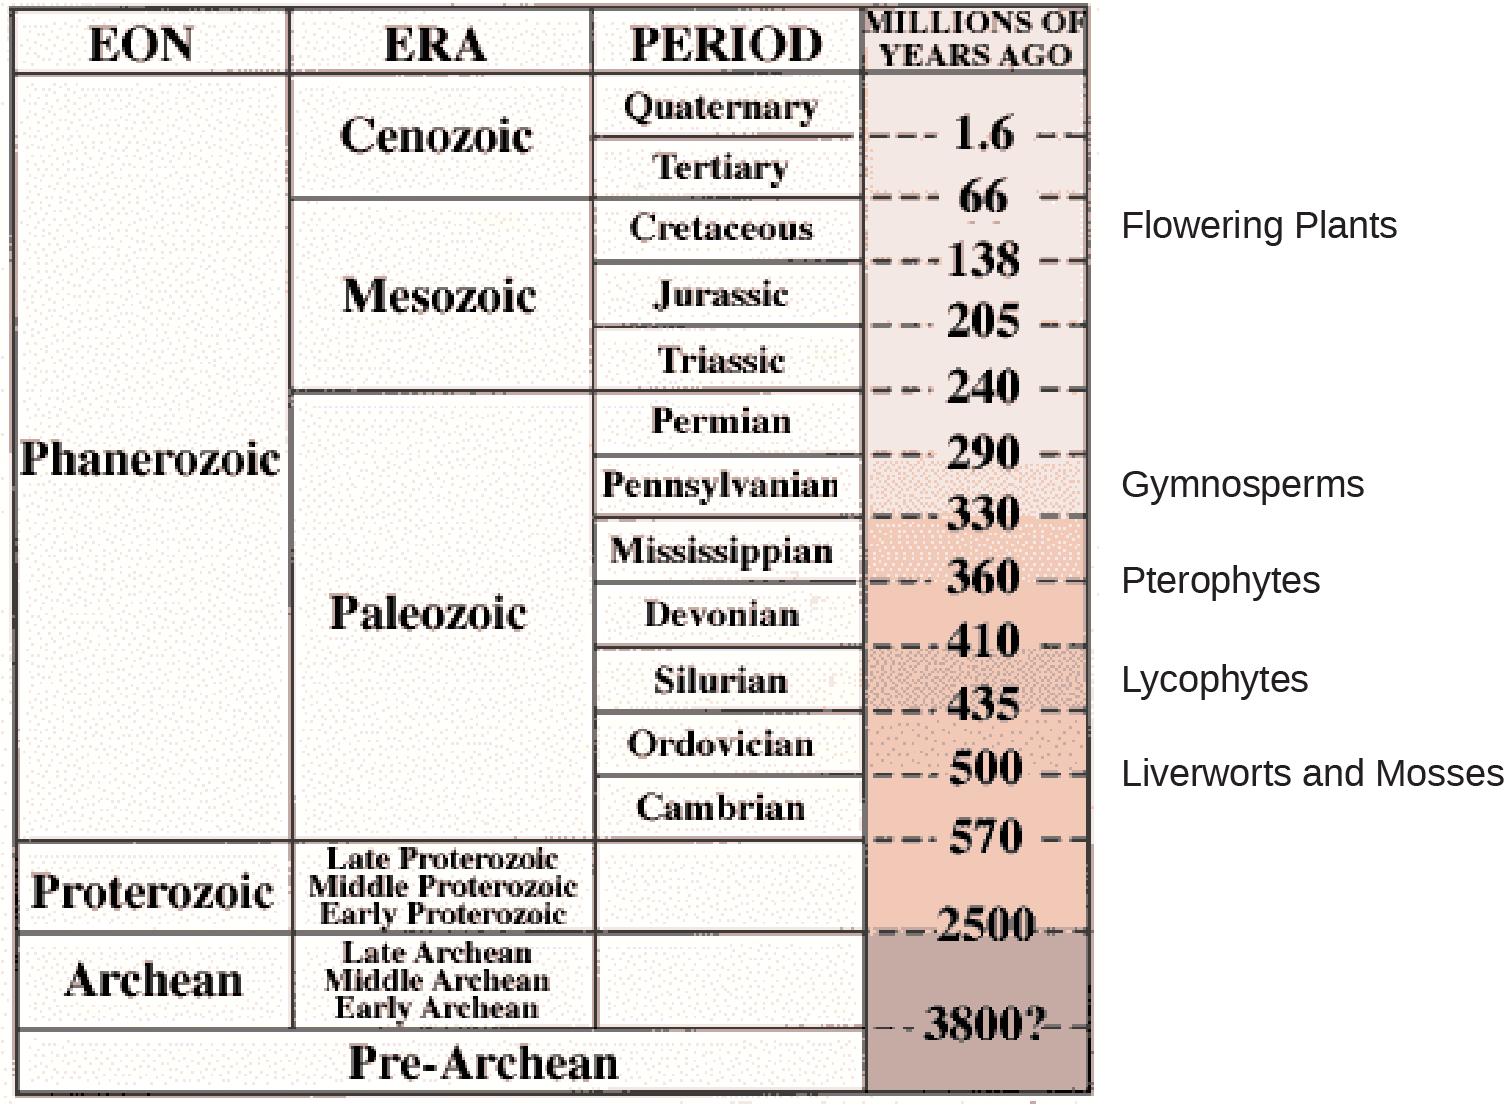 Part A is a table showing a timeline of geological eras.  The columns of the table read, from left to right, Eon, era, period, millions of years ago.  It shows that during the Phanerozoic eon, three eras occured; the Cenozoic, mesozoic, and the paleozoic.  The cenozoic era contained the quaternary period, which occured 1.6 million years ago, and the tertiary period, which occured 66 million years ago.  The mesozoic era contained the cretaceous period, occuring between 66 and 138 million years ago.  Flowering plants evolved during this period.  The Jurrasic period occured between 138 and 205 million years ago, and the triassic period occured between 205 and 240 million years ago.  The Paleozoic era contained many periods. The permian period occured between 240 and 290 years ago.  The Pennsylvanian period occured 290 to 330 million years ago, and gymnosperms evolved then.  The Mississippian period occured 330 to 360 million years ago.  Pterophytes evolved around 360 million years ago.  The Devonian period occured 360 to 410 million years ago.  The silurian period occured 410 to 435 million years ago, in which lycophytes evolved.  The ordovician period occured 435 to 500 million years ago; in which liverworts and mosses evolved.  The cambrian period occured 500 to 570 million years ago.  During the Proterozoic eon, there were three eras, the late, middle, and early proterozoic eras.  These occured between 570 and 2500 million years ago.  In the archean eon, three eras occured; late, middle, and early archean eras.  These occured from 2500 to 3800 million years ago.  Pre archean is shown as a single eon, era, and period, occuring more than 3800 million years ago.